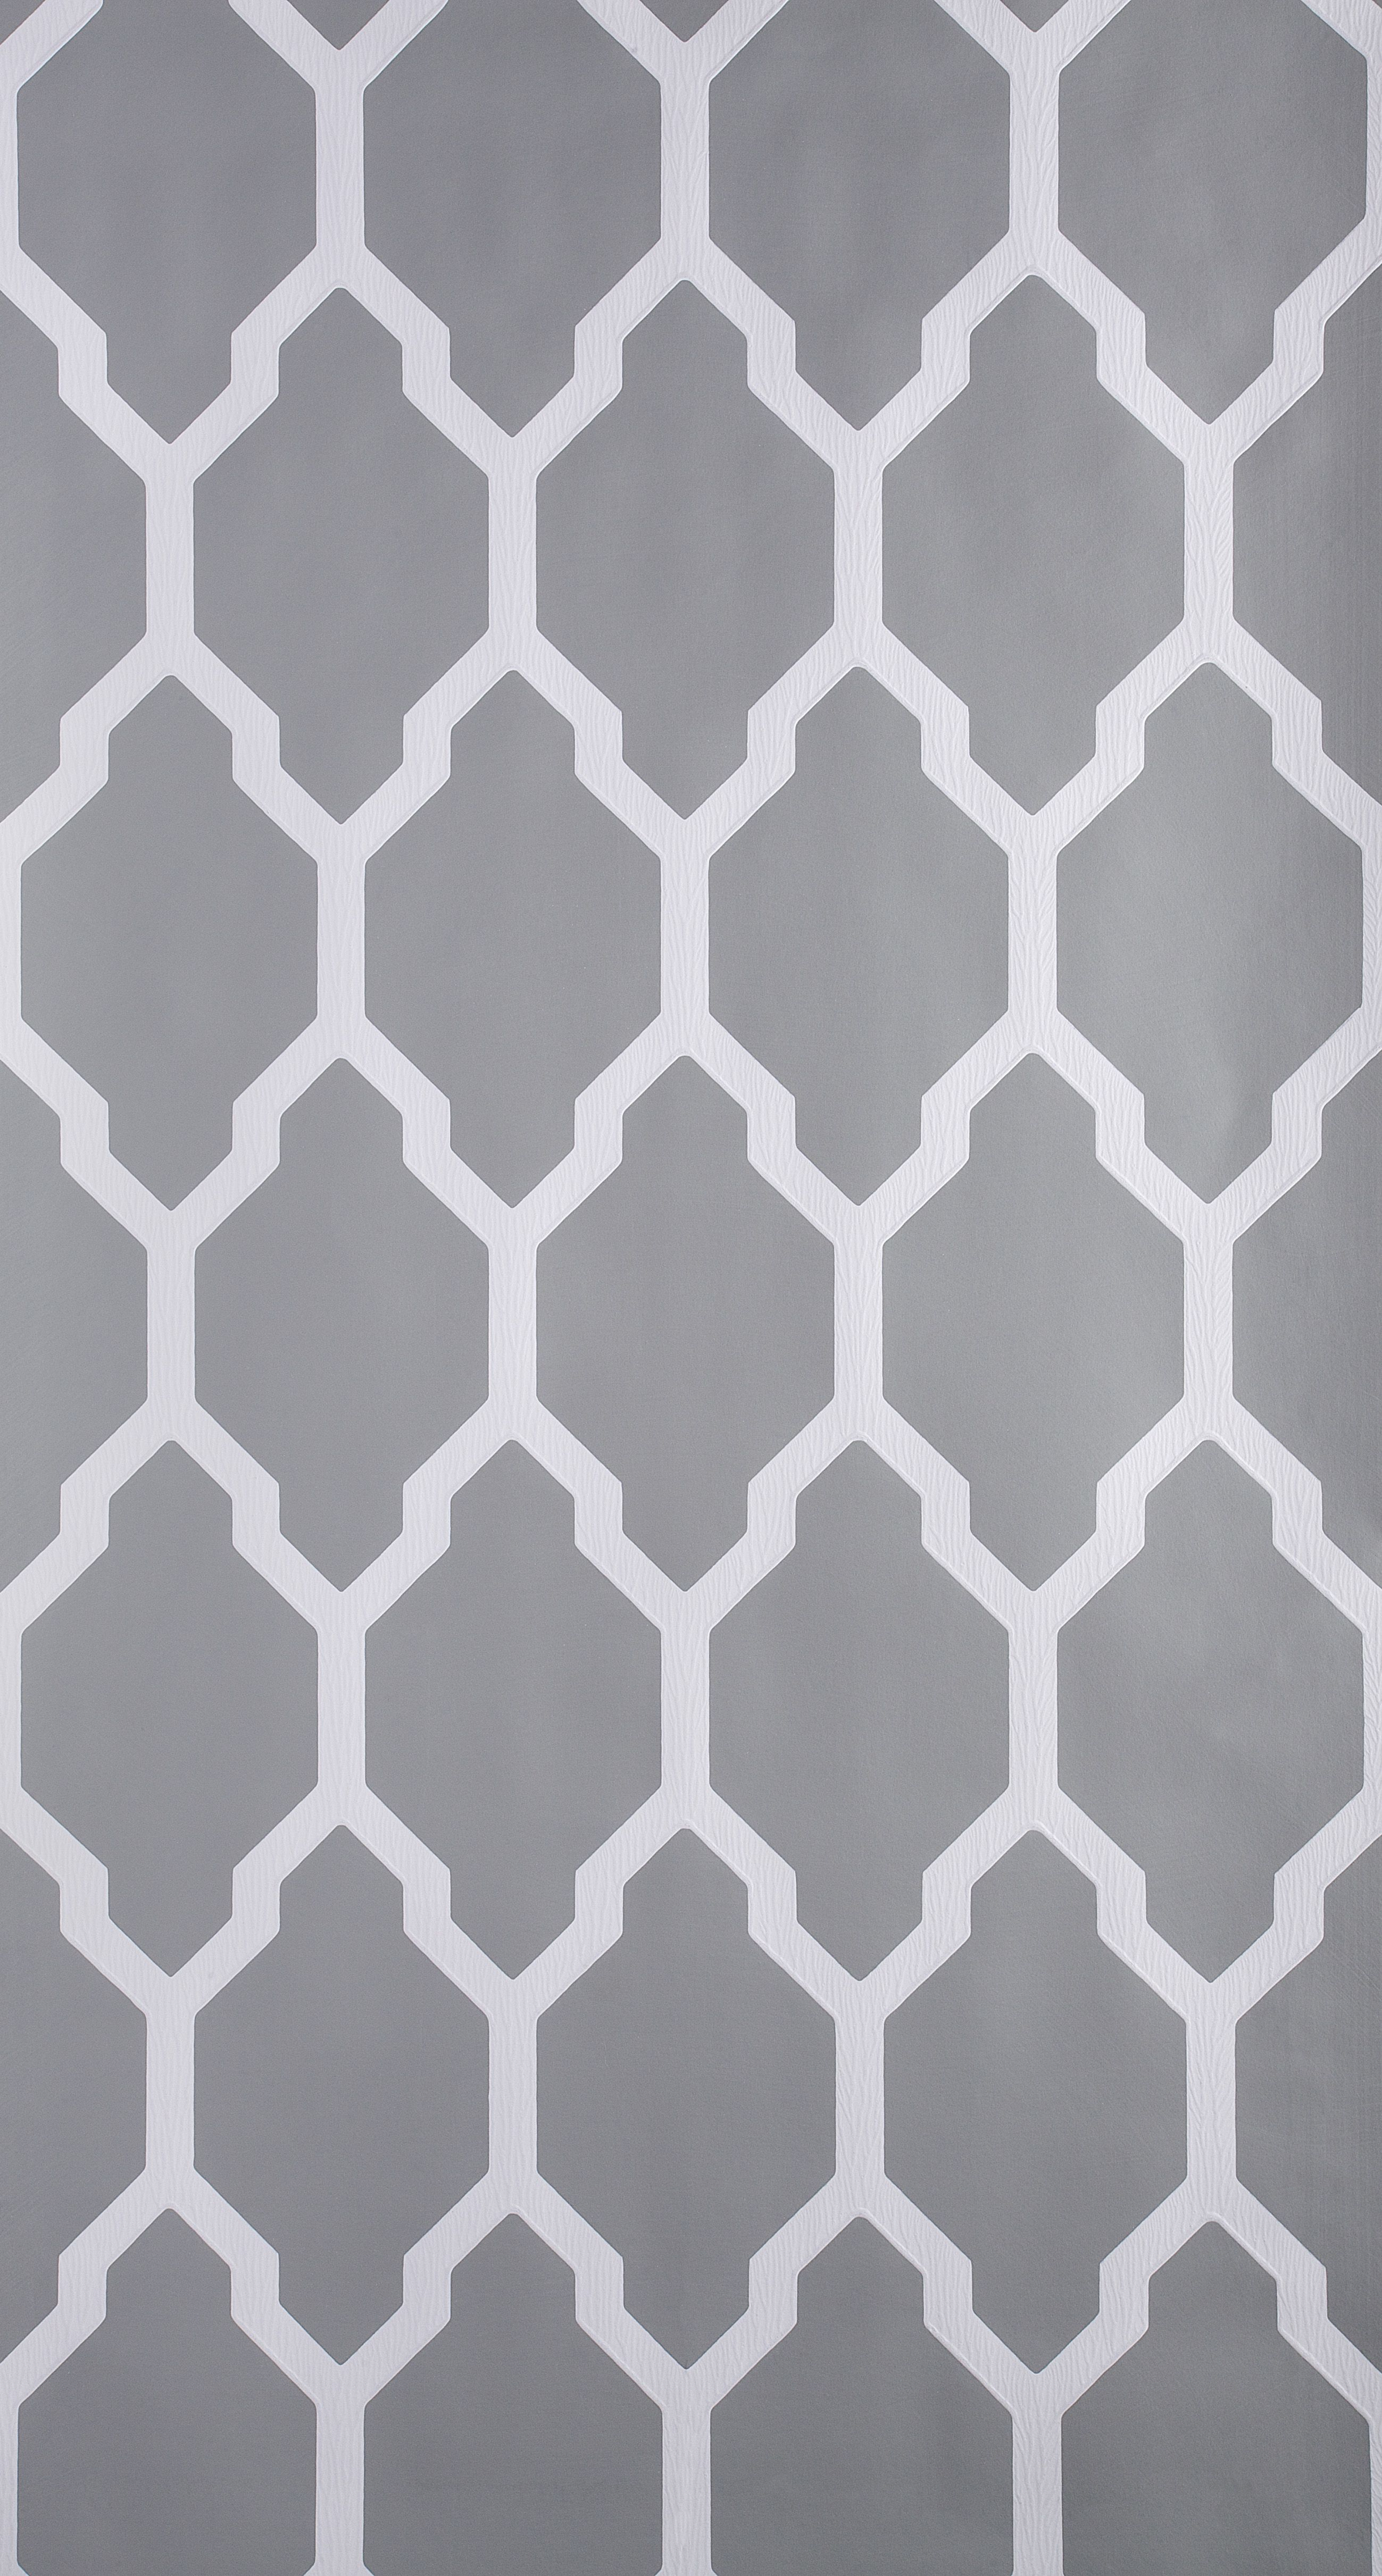 Tessella is a truly geometric paper. Inspired by a 19th century ...